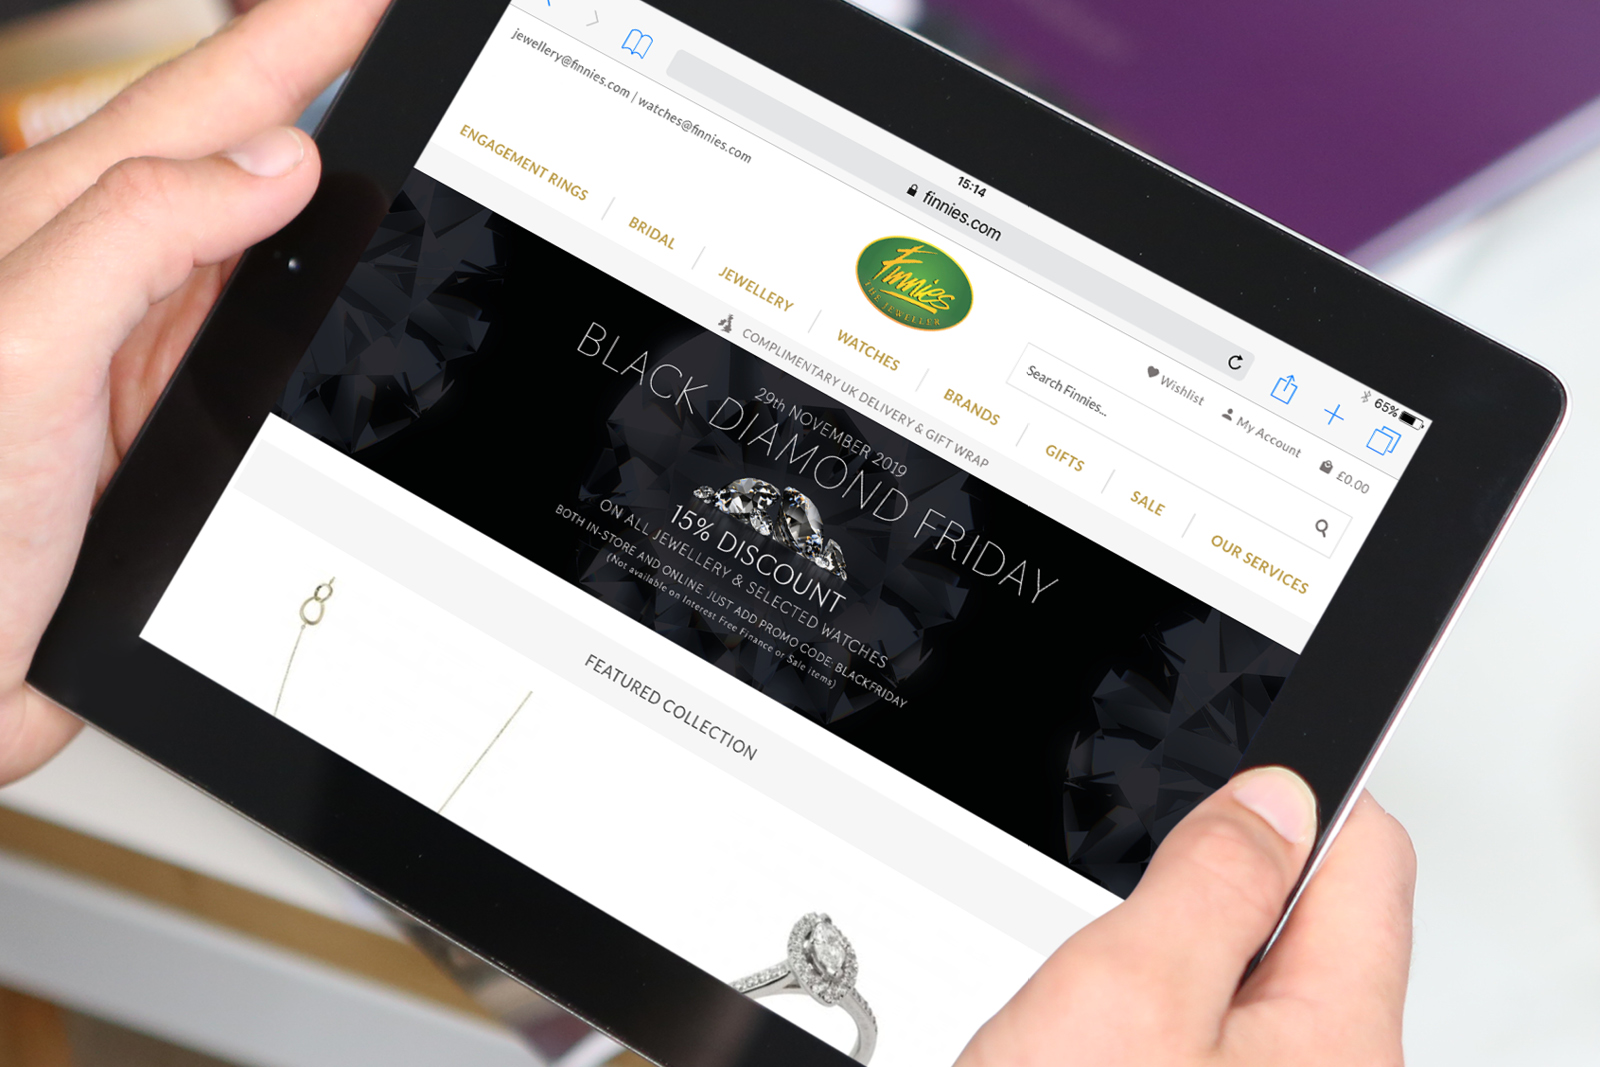 PORTFOLIO 'Black Diamond Friday' online marketing campaign for Finnies the Jewellers, Aberdeen